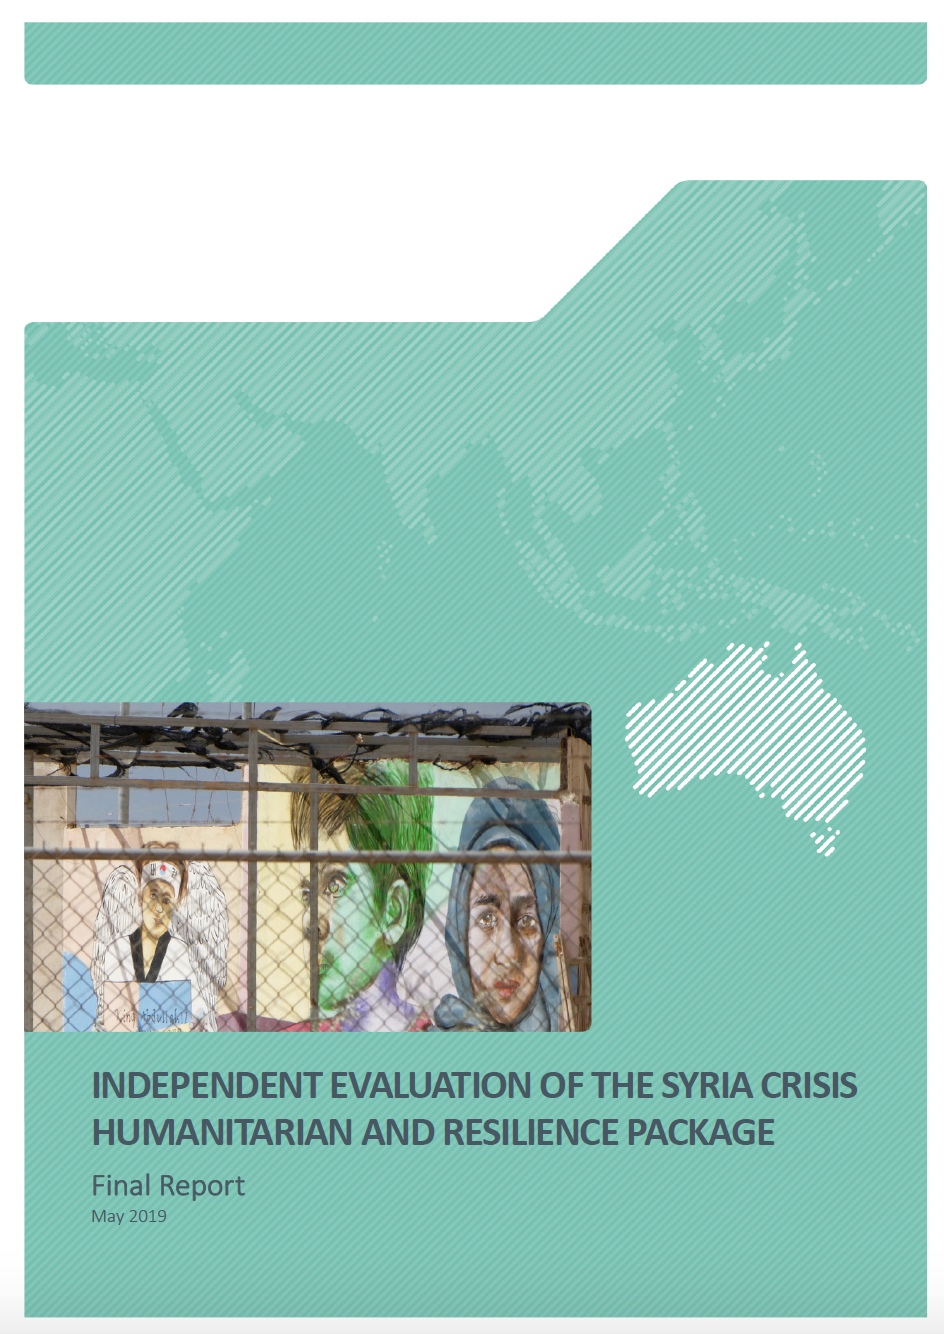 Independent Evaluation of the Syria crisis humanitarian and resilience package